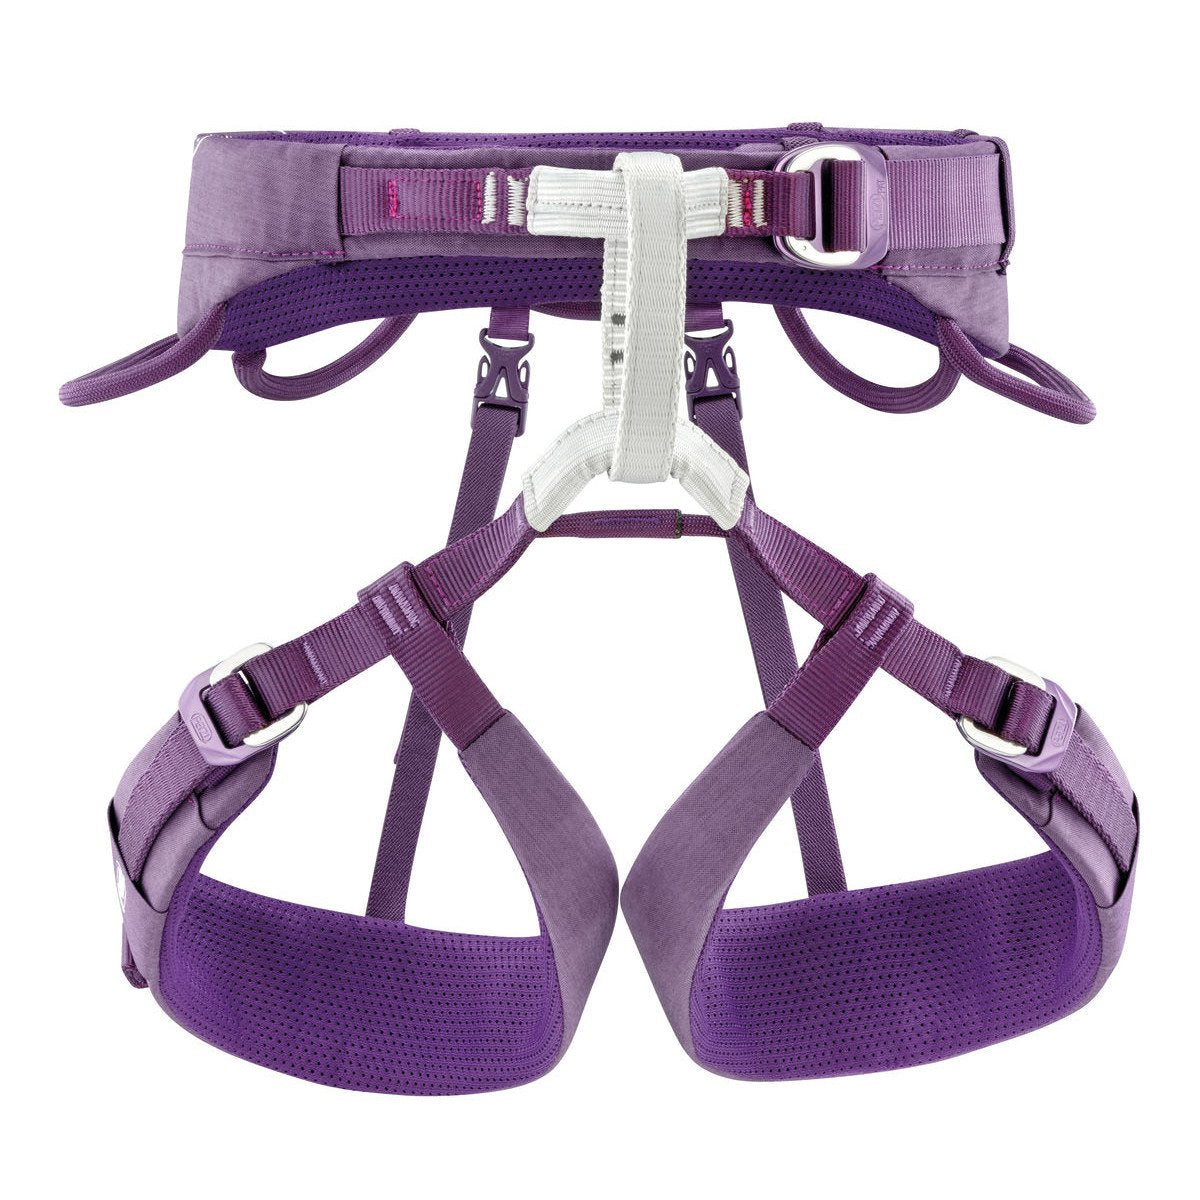 Petzl Luna womens Harness, front view in purple colour